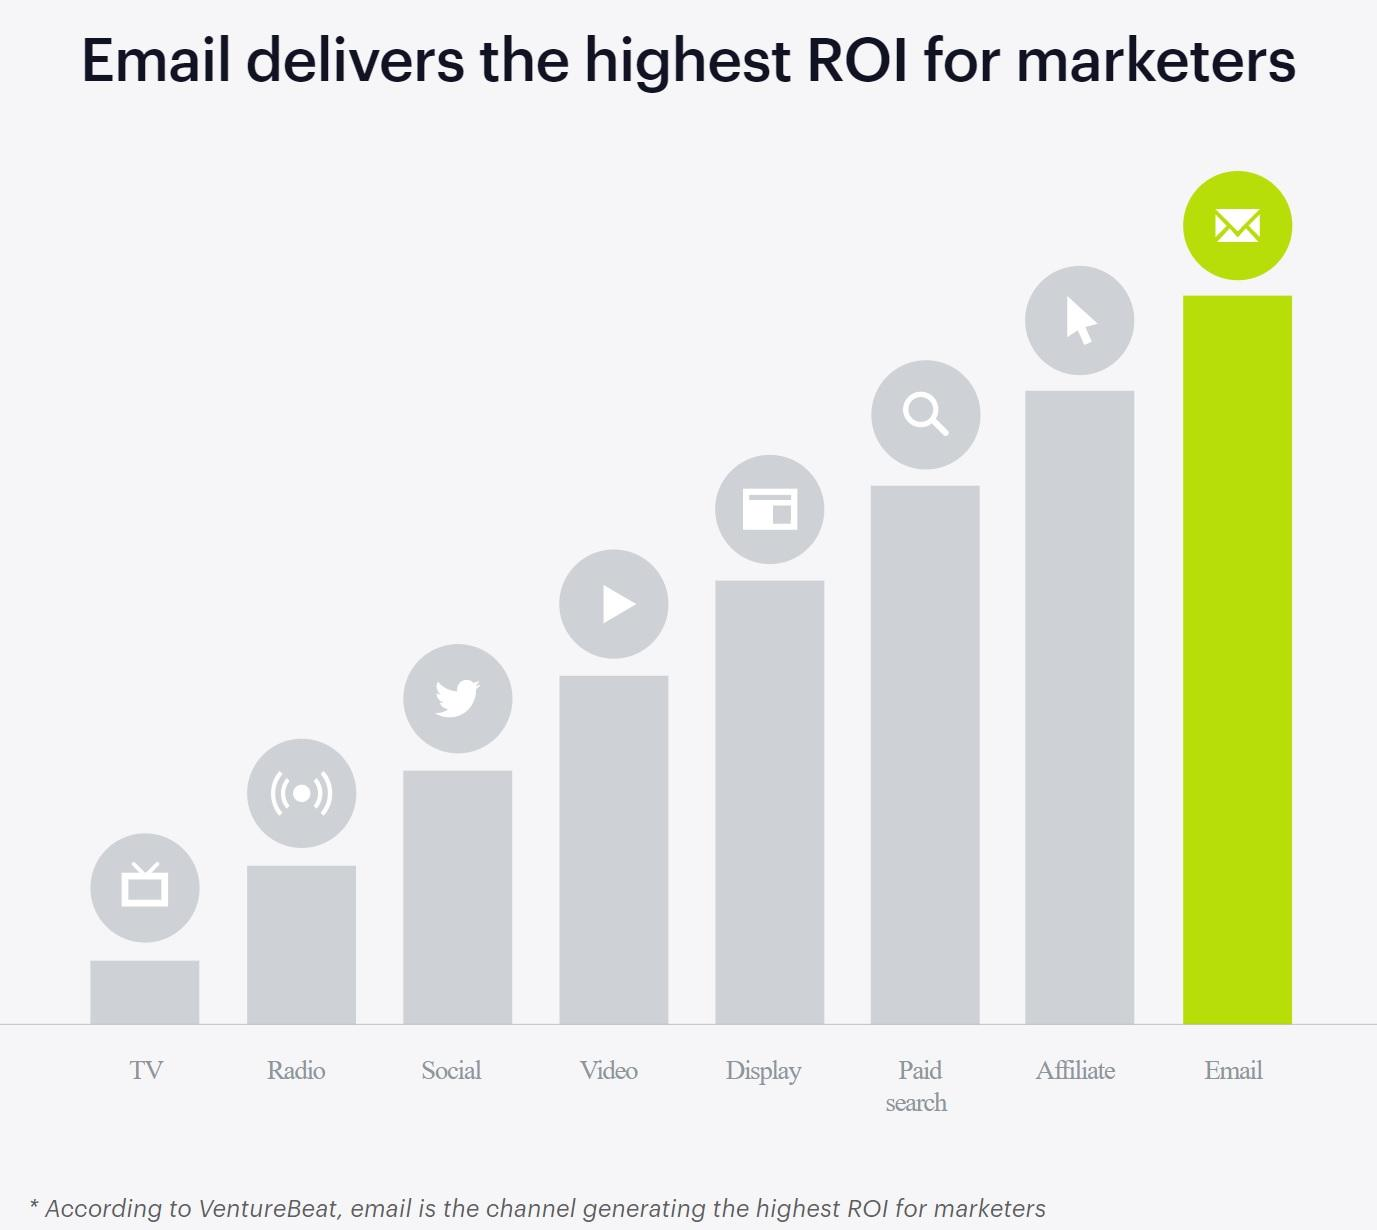 On average, every $1 spent on email marketing sees an ROI of $38.